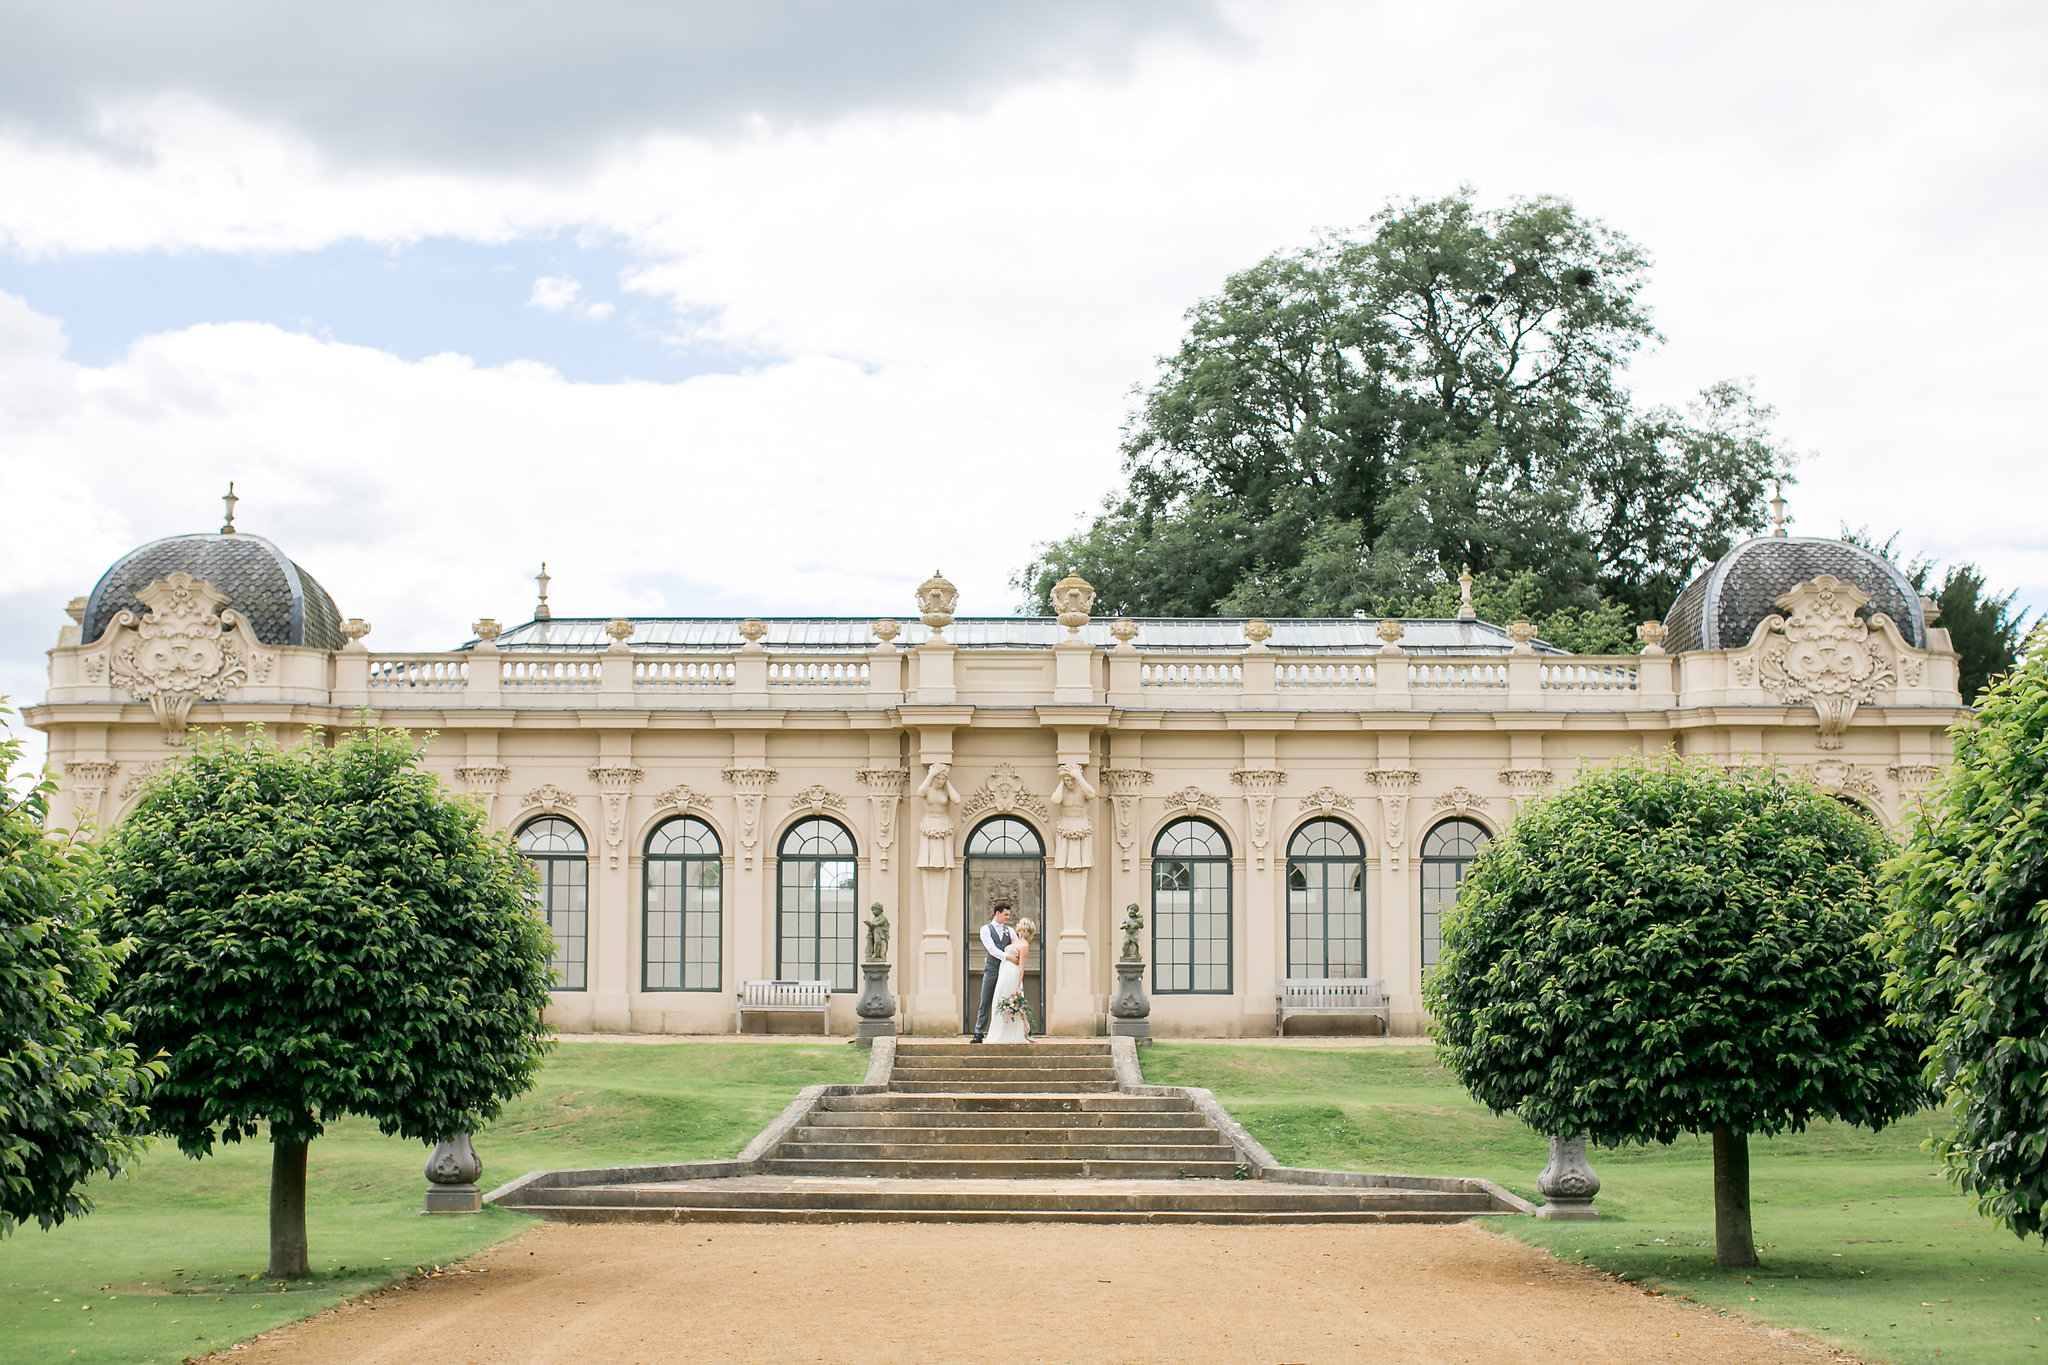 Philippa_sian_photography_wrest_park-89.jpg